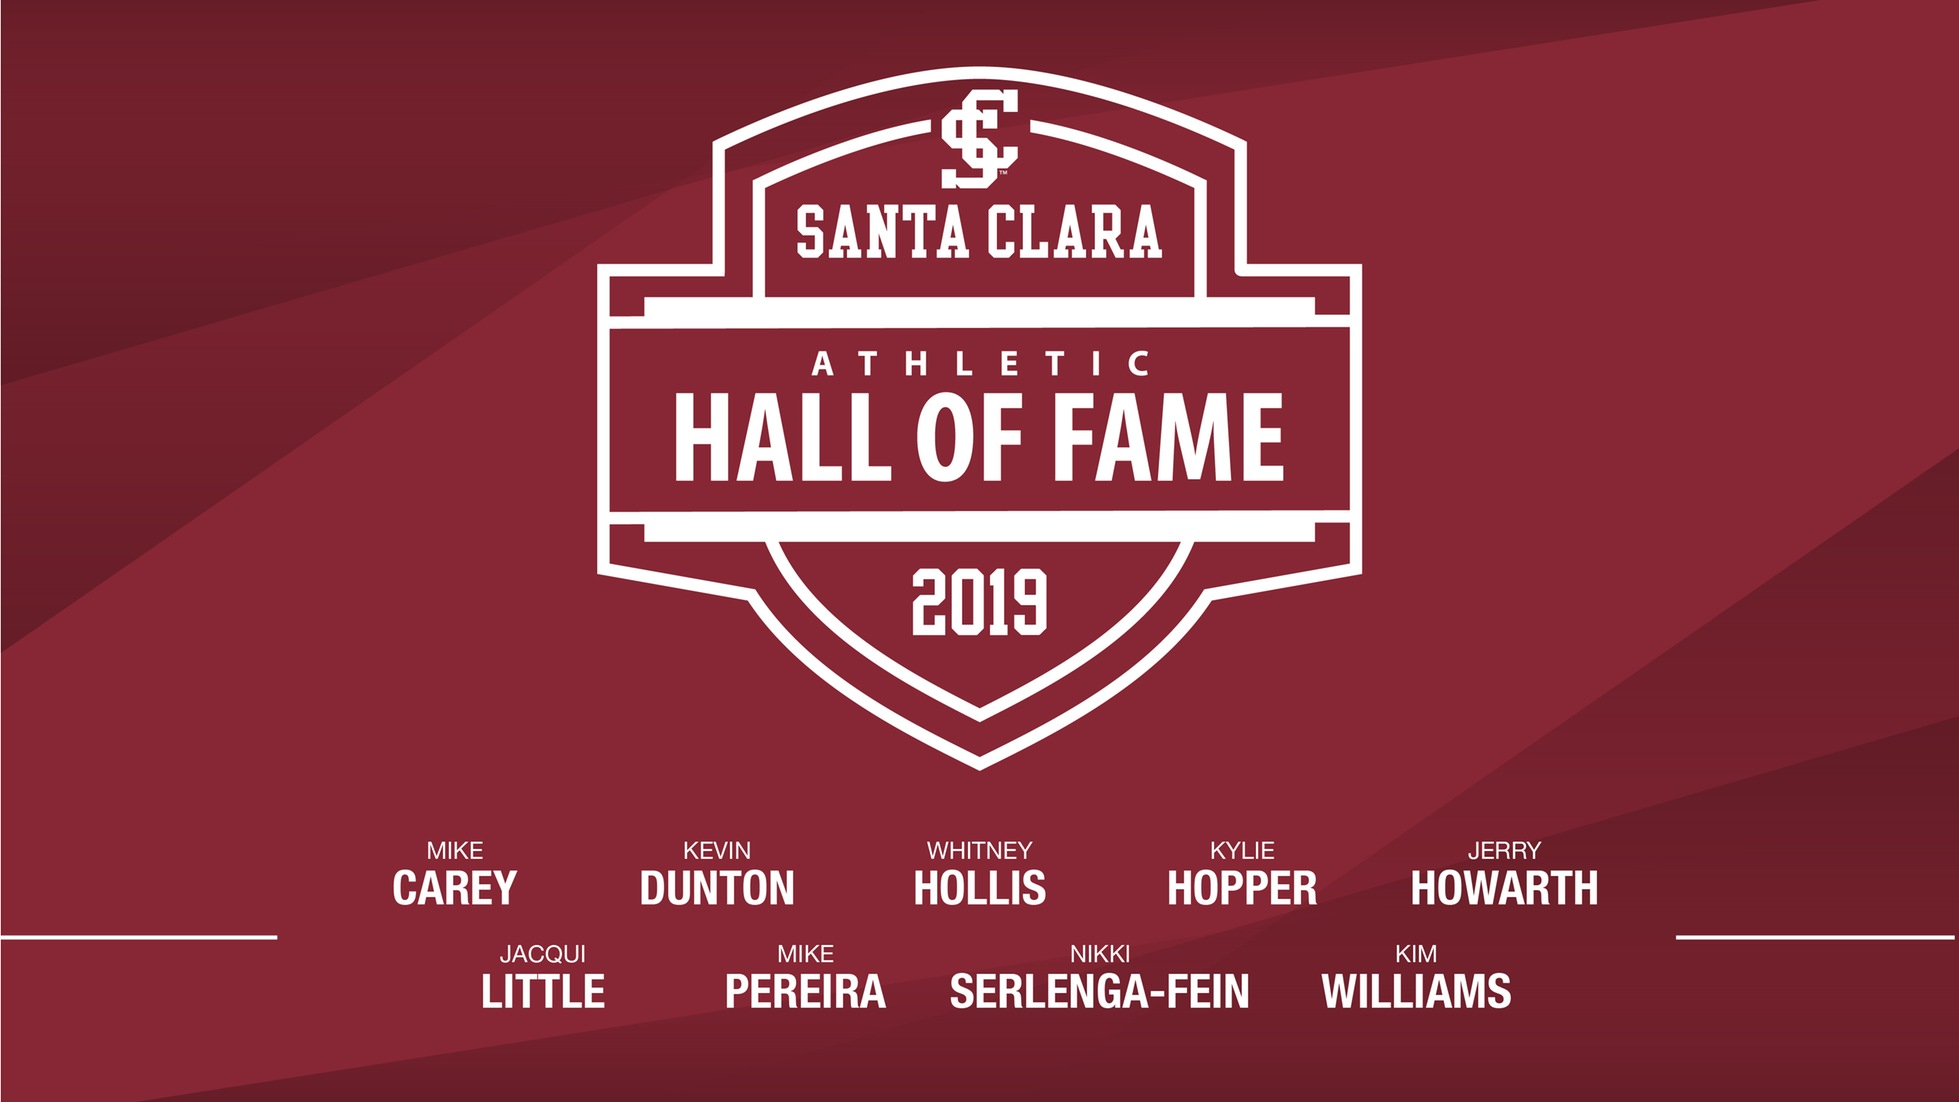 Red and White Celebration Features 2019 Athletic Hall of Fame Induction